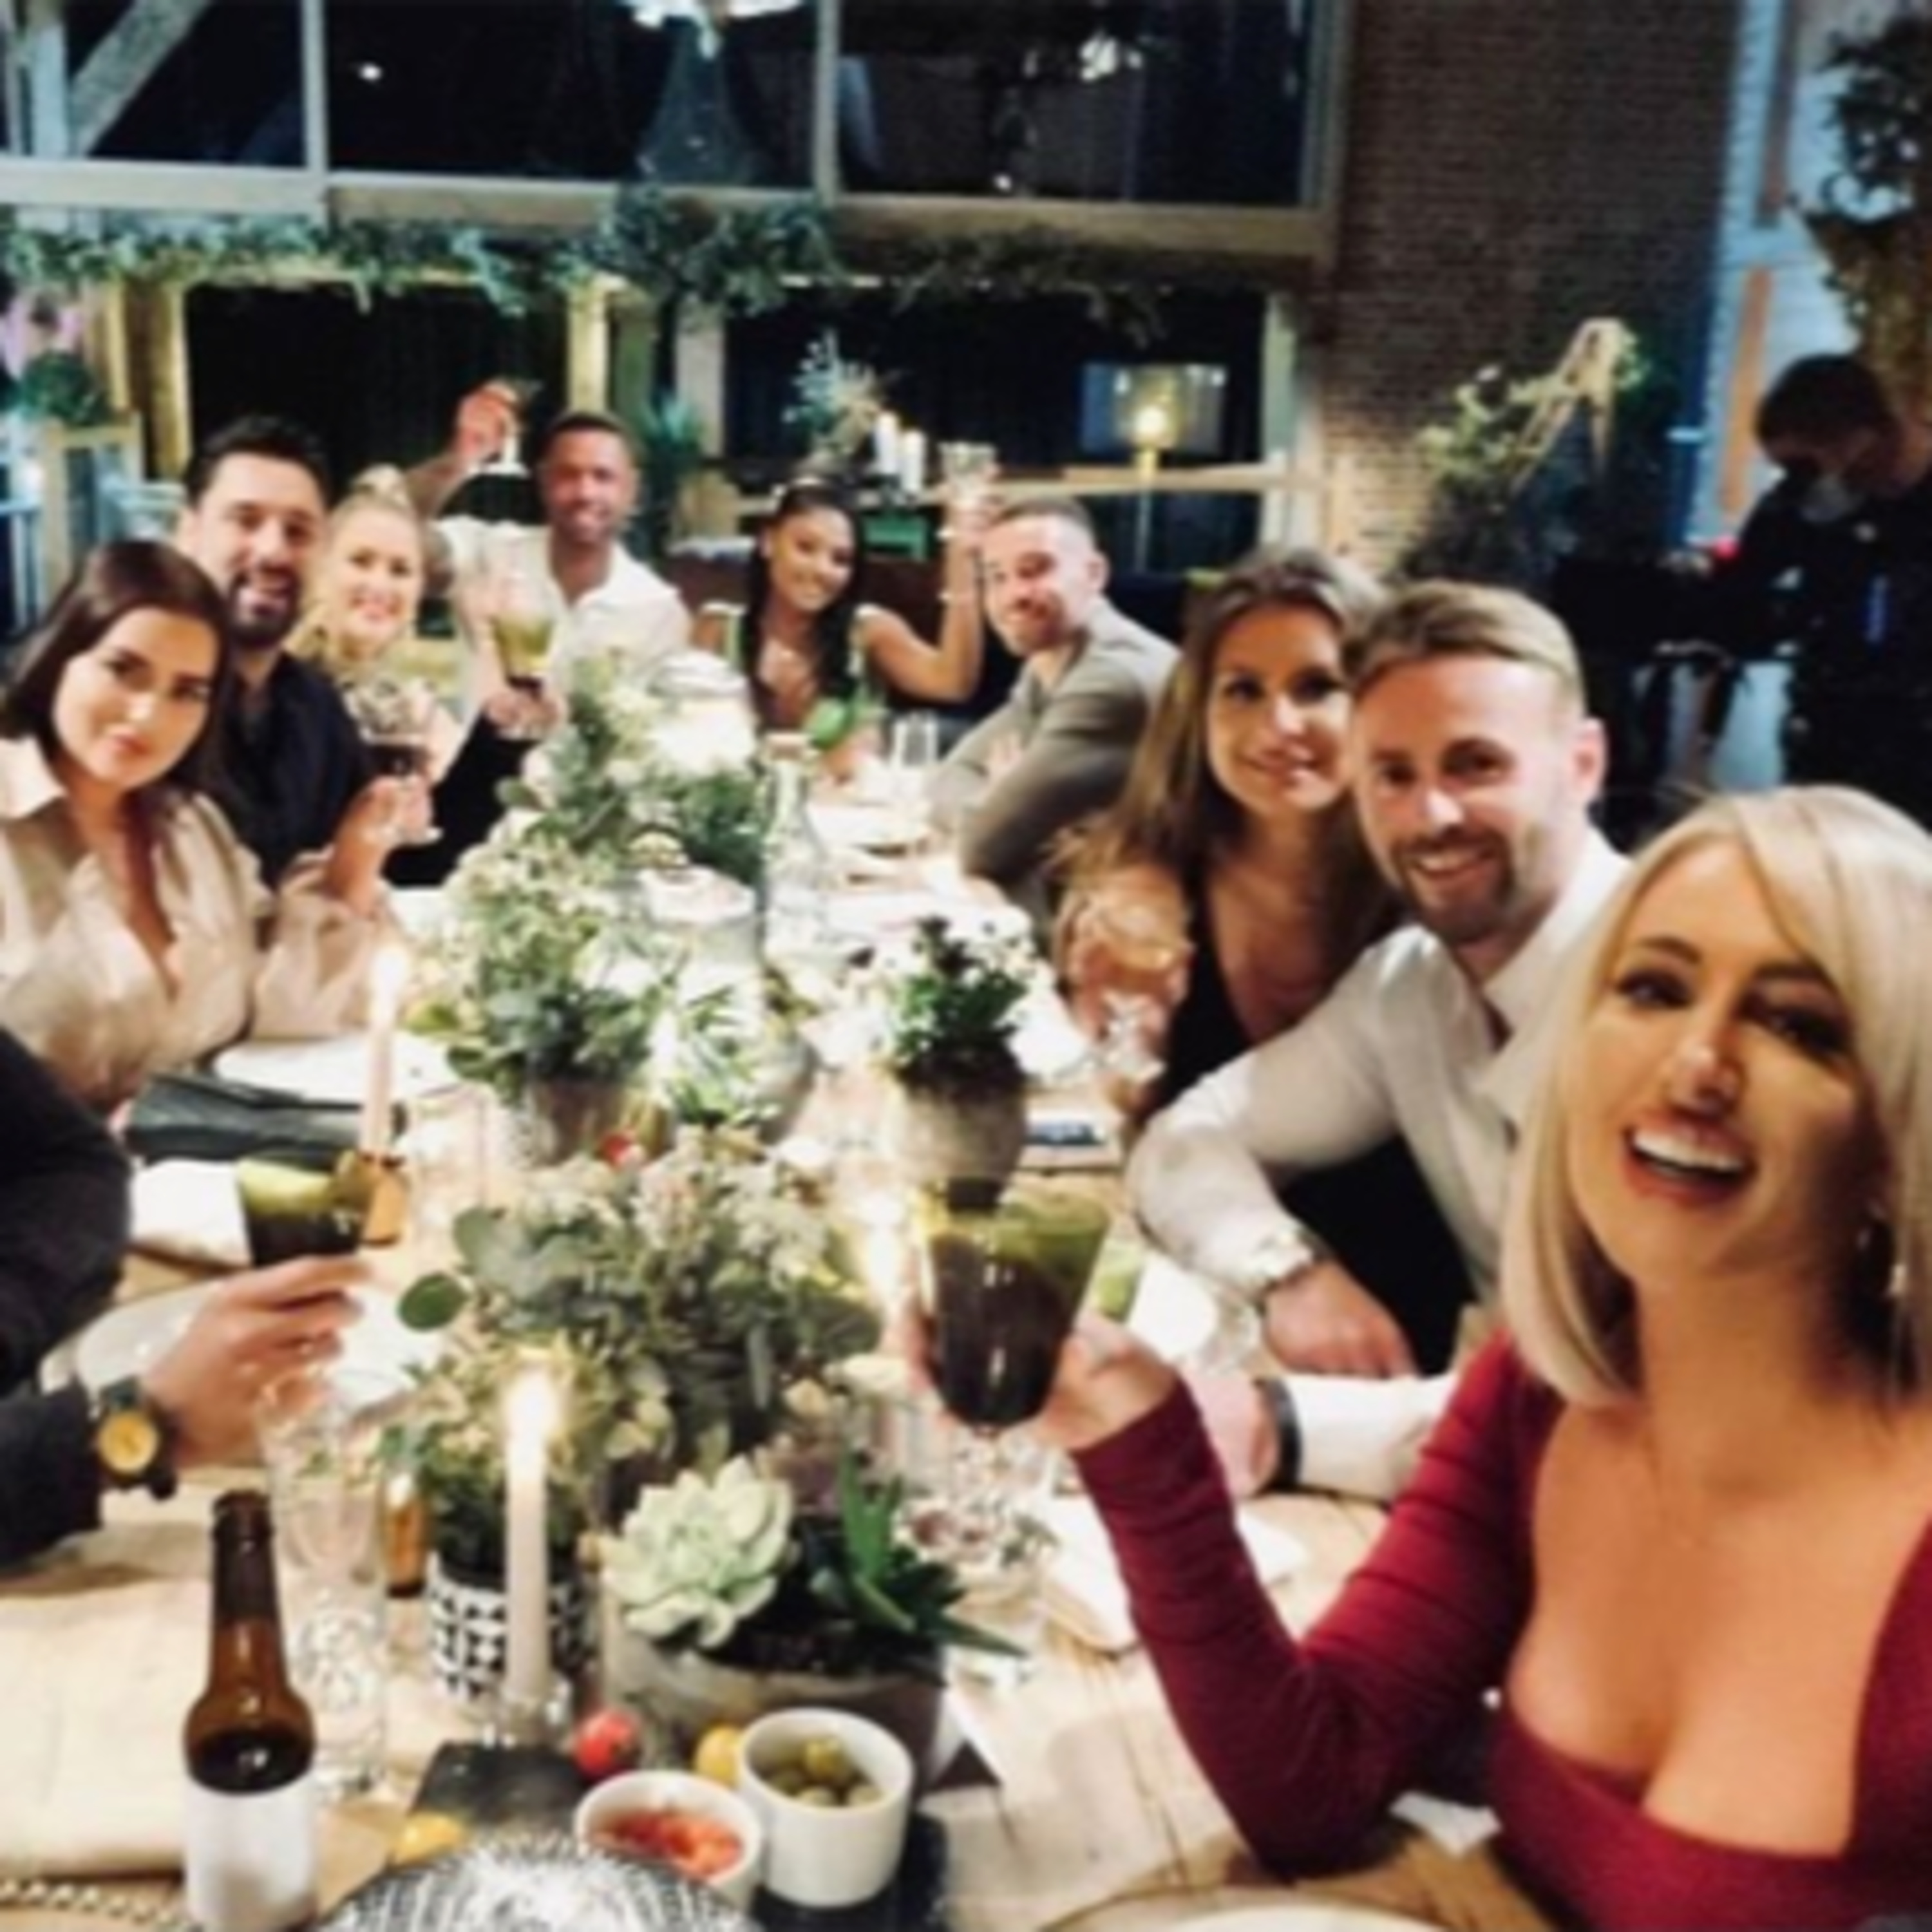 MAFS EPS 13-16 - The Final Dinner Date and House Stays